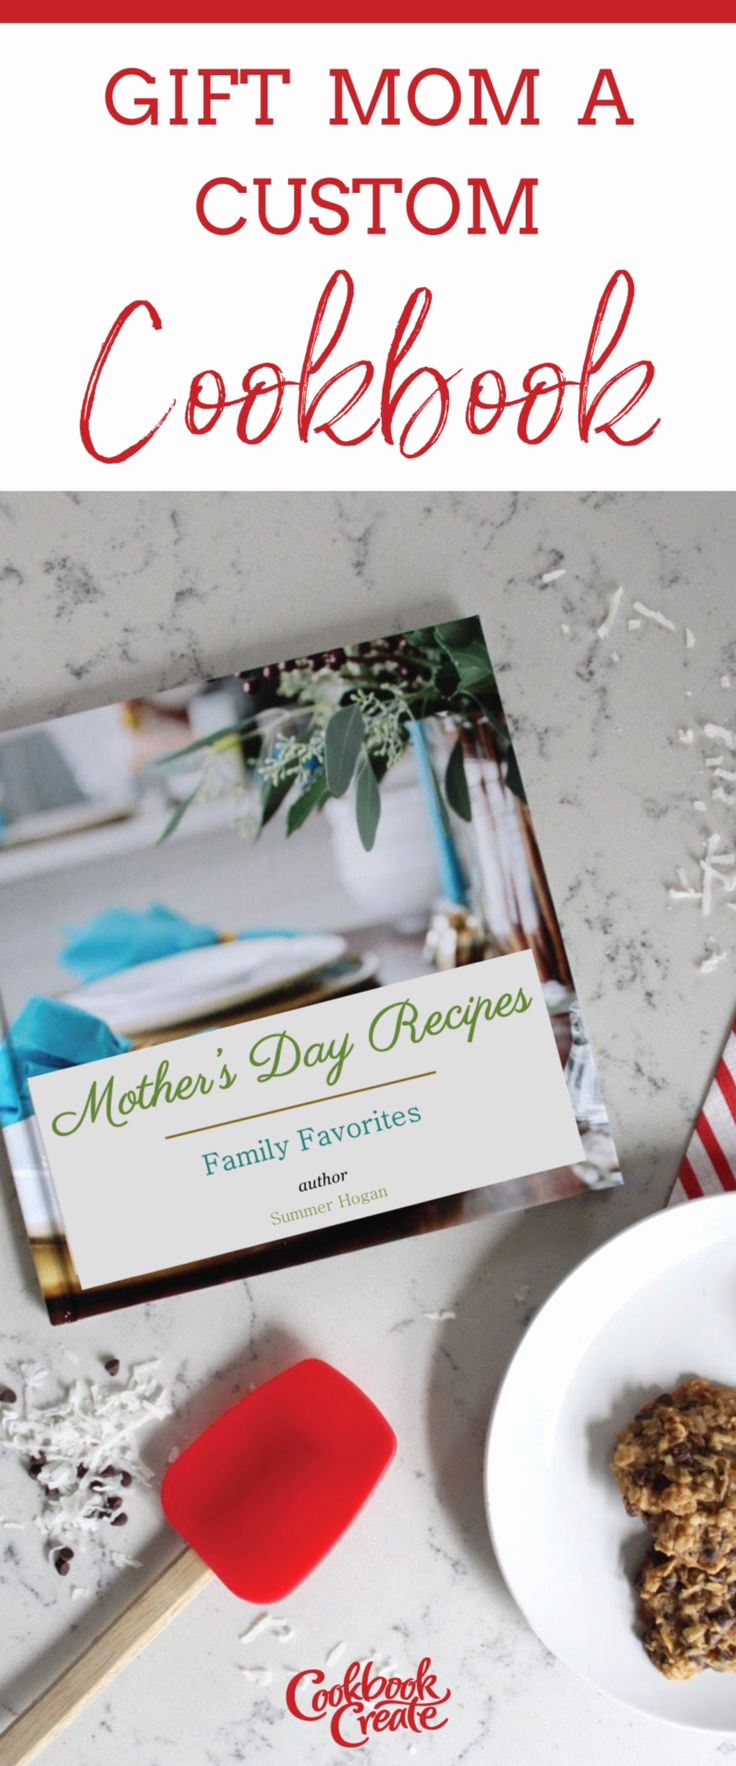 Make Your Own Cookbook Template Best Of Best 25 Make Your Own Cookbook Ideas On Pinterest